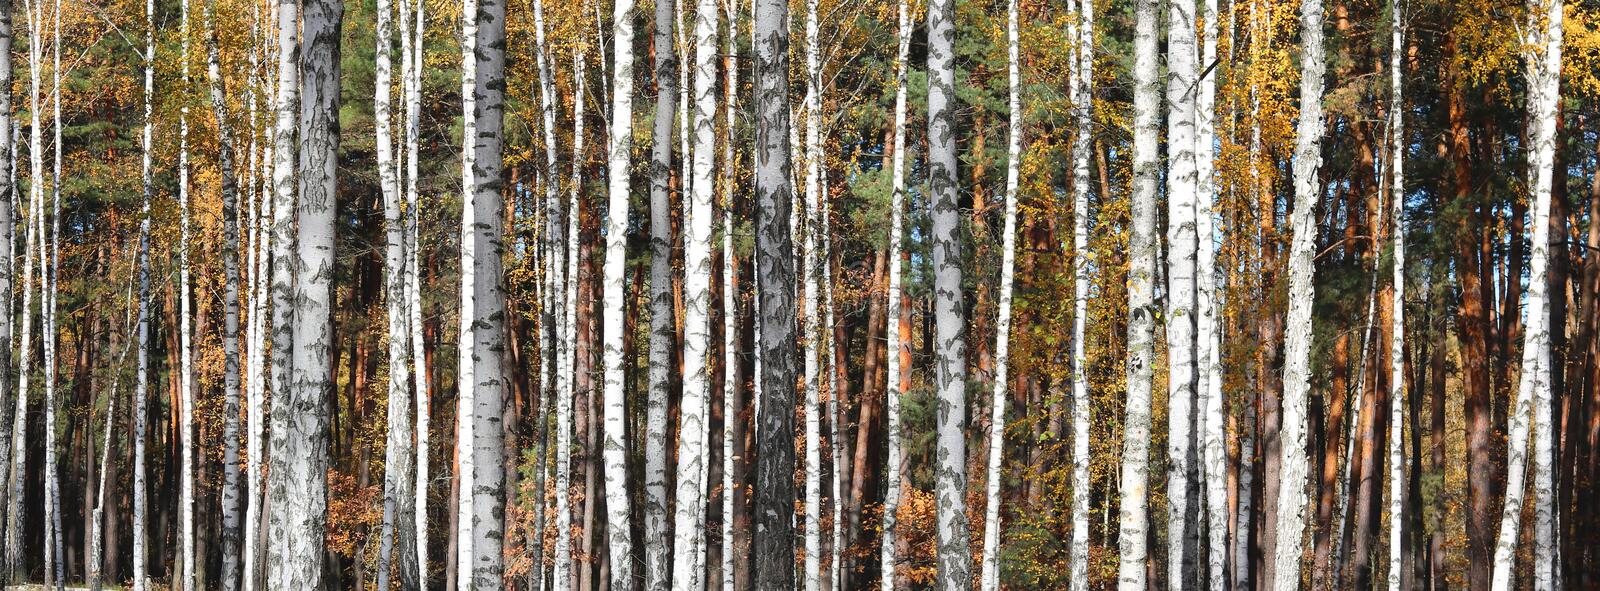 Birch trees in autumn. Beautiful birch trees with yellow leaves in autumn stock photo